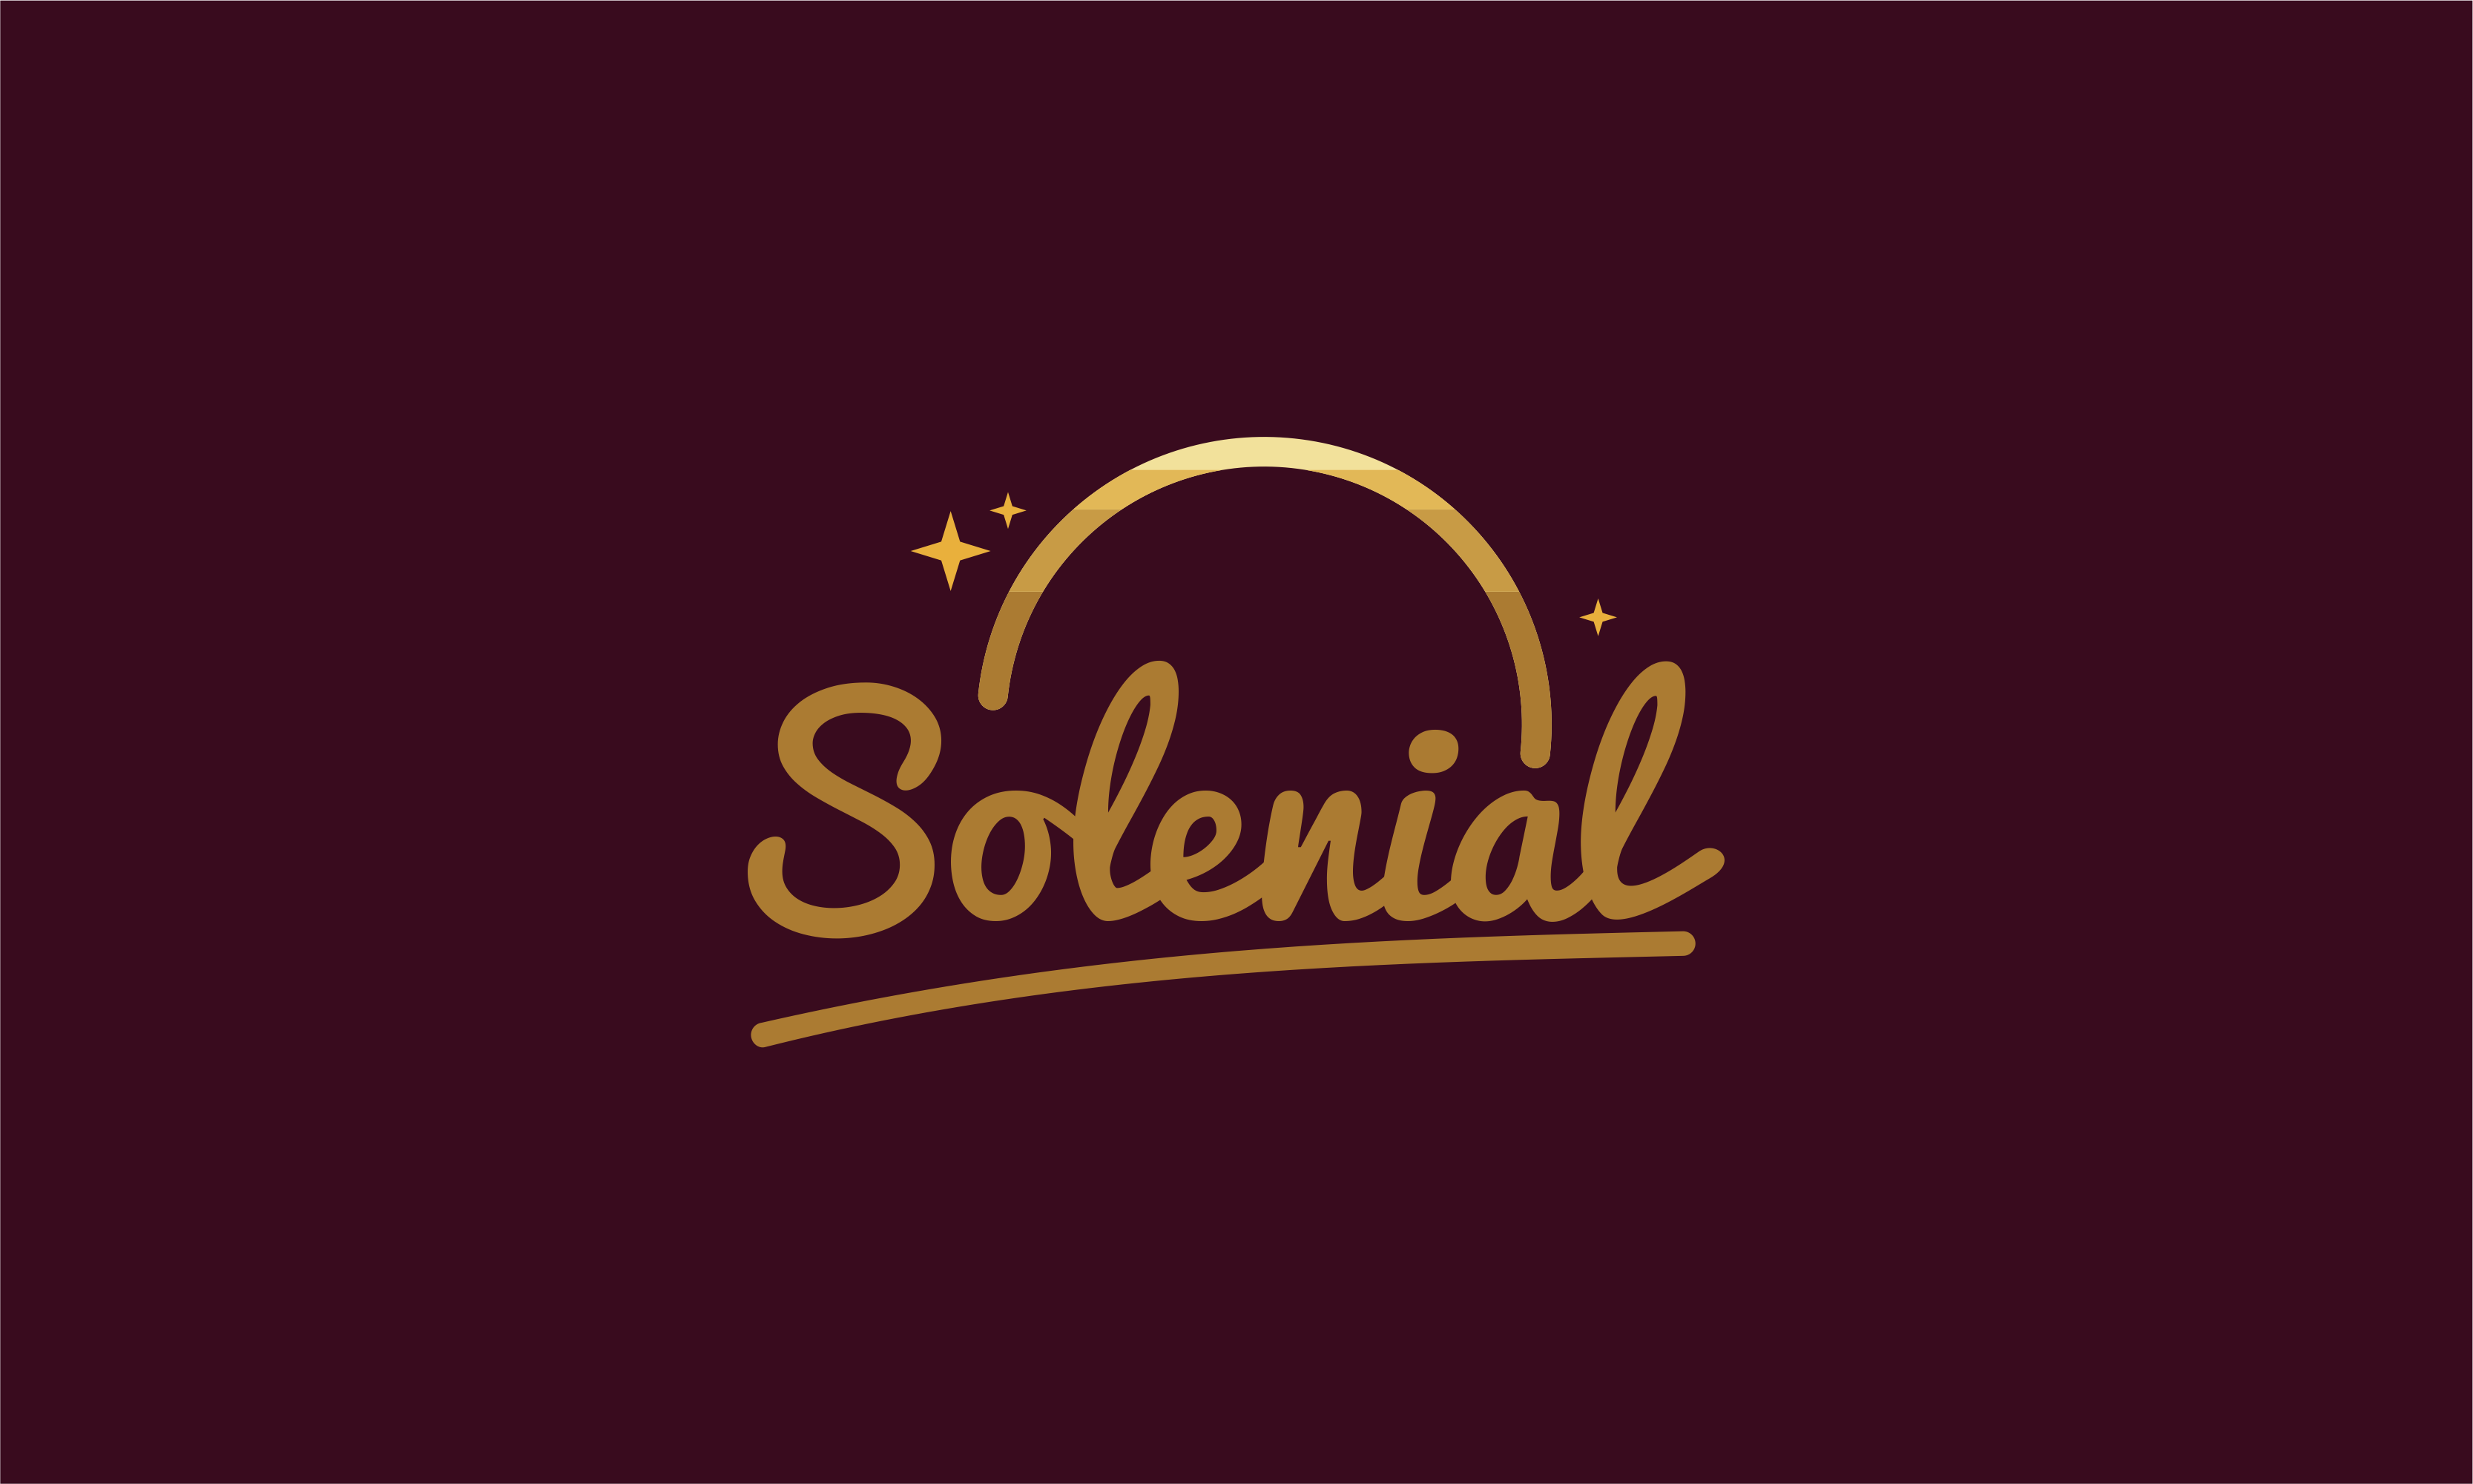 Solenial - E-commerce business name for sale